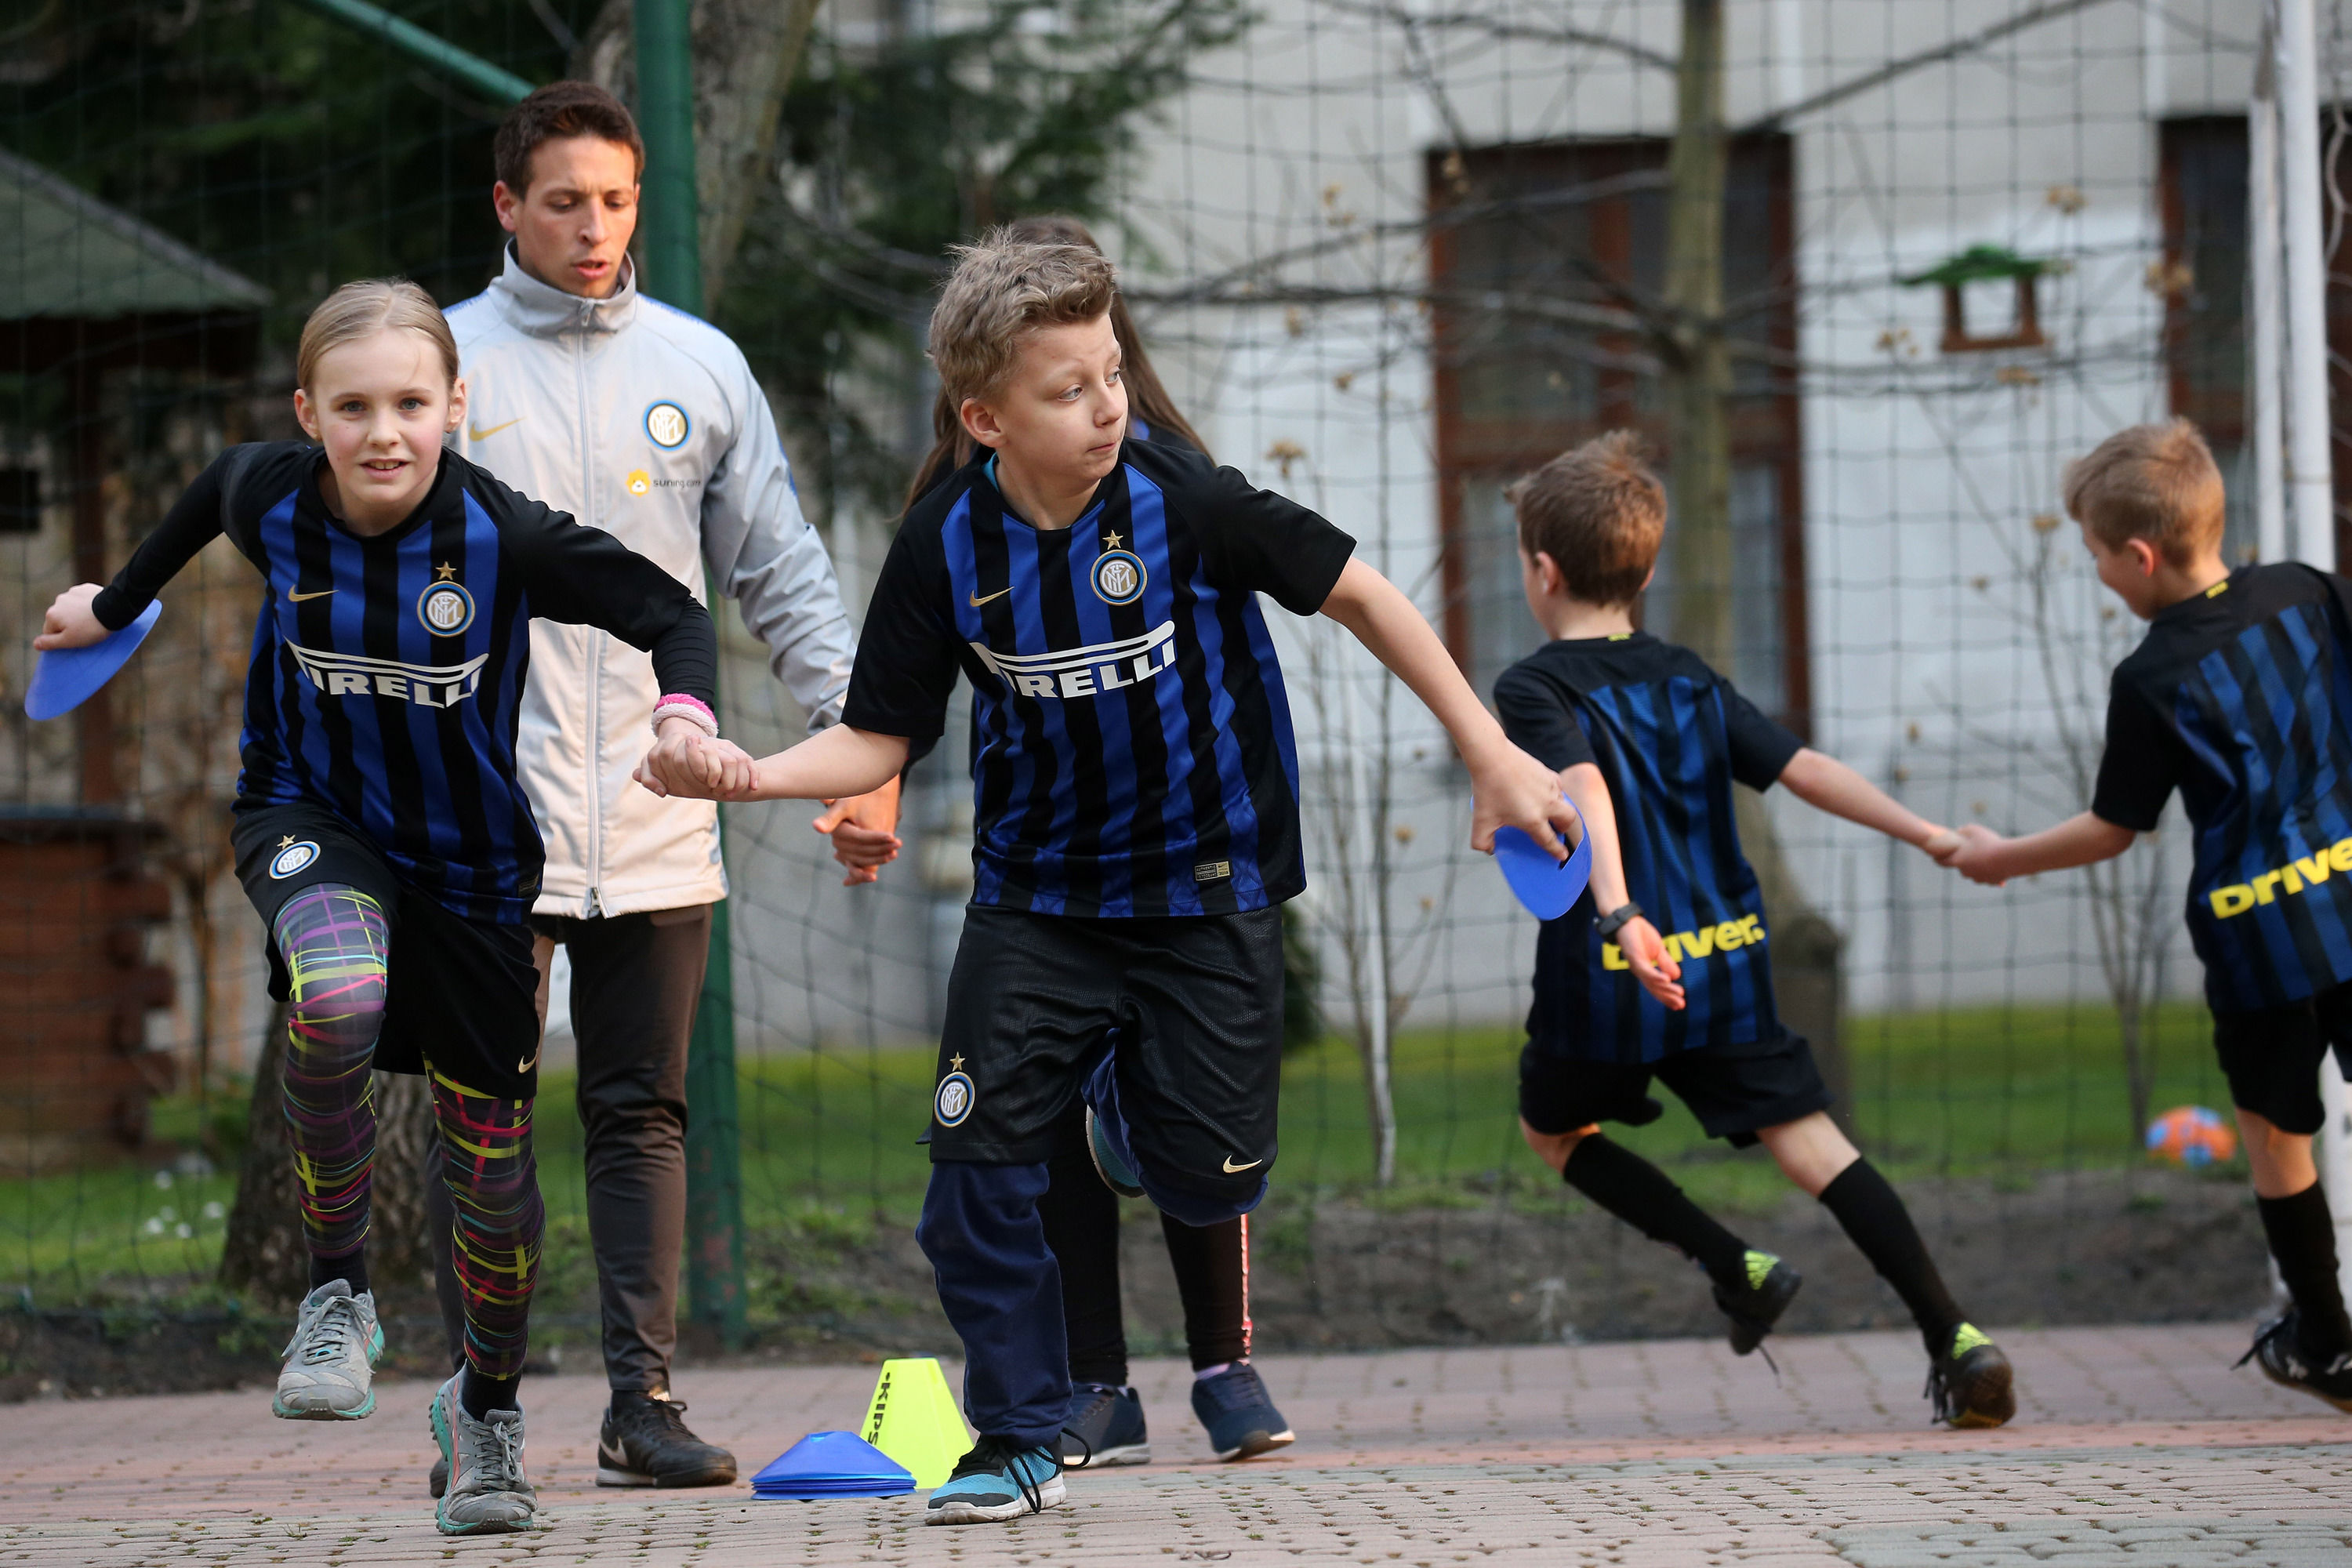 New energy at Inter Campus Poland